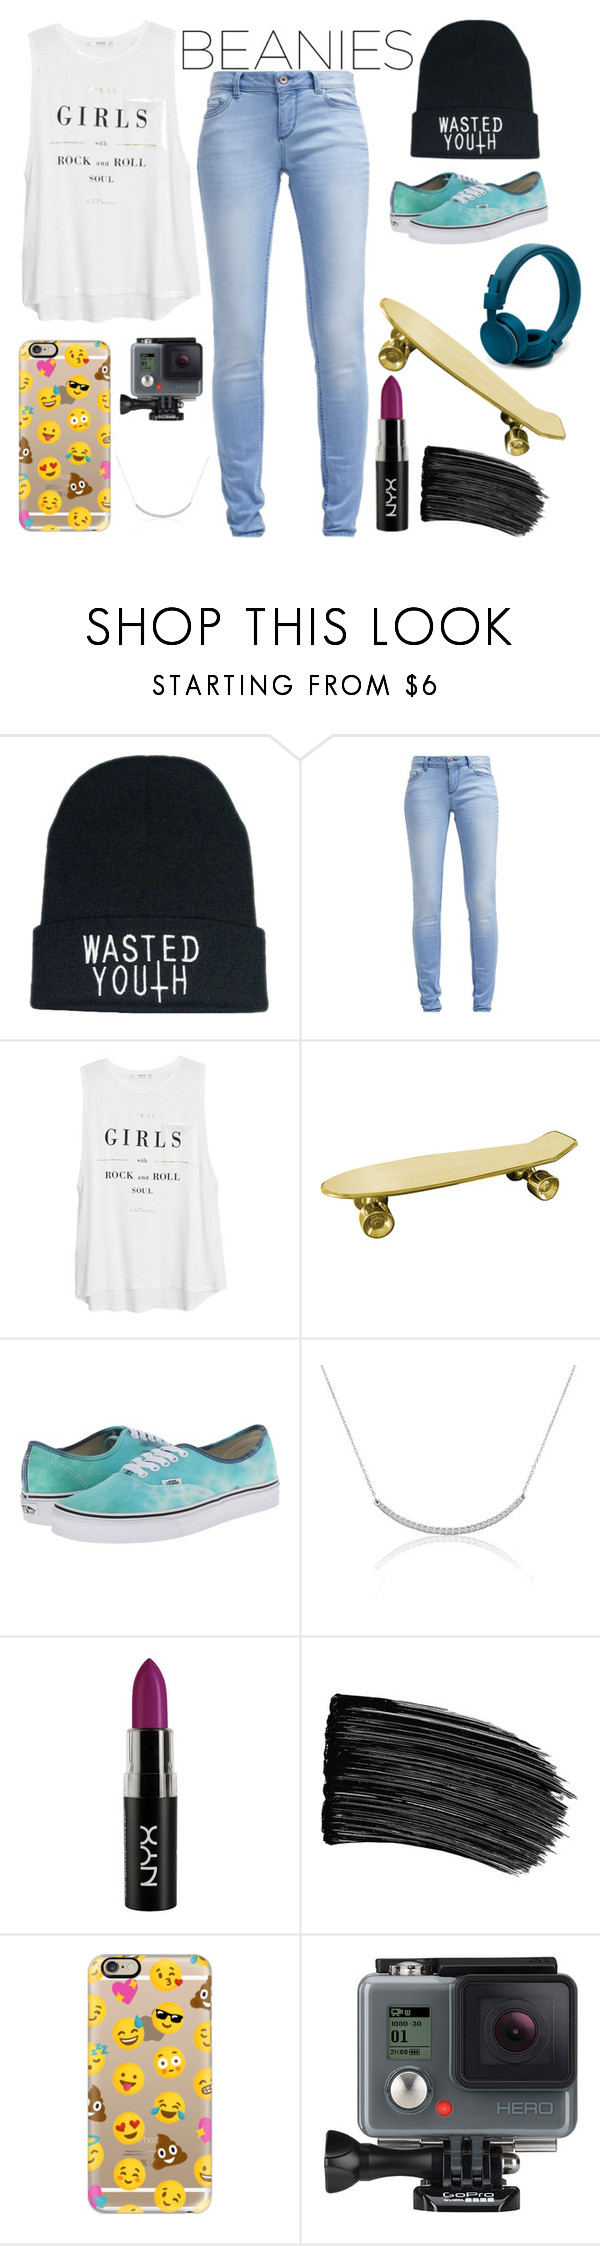 """""""BeanieSwag"""" by power-of-swag ❤ liked on Polyvore featuring TOM TAILOR, MANGO, Seletti, Vans, L'Oréal Paris, Casetify, GoPro, cute, cool and nice"""